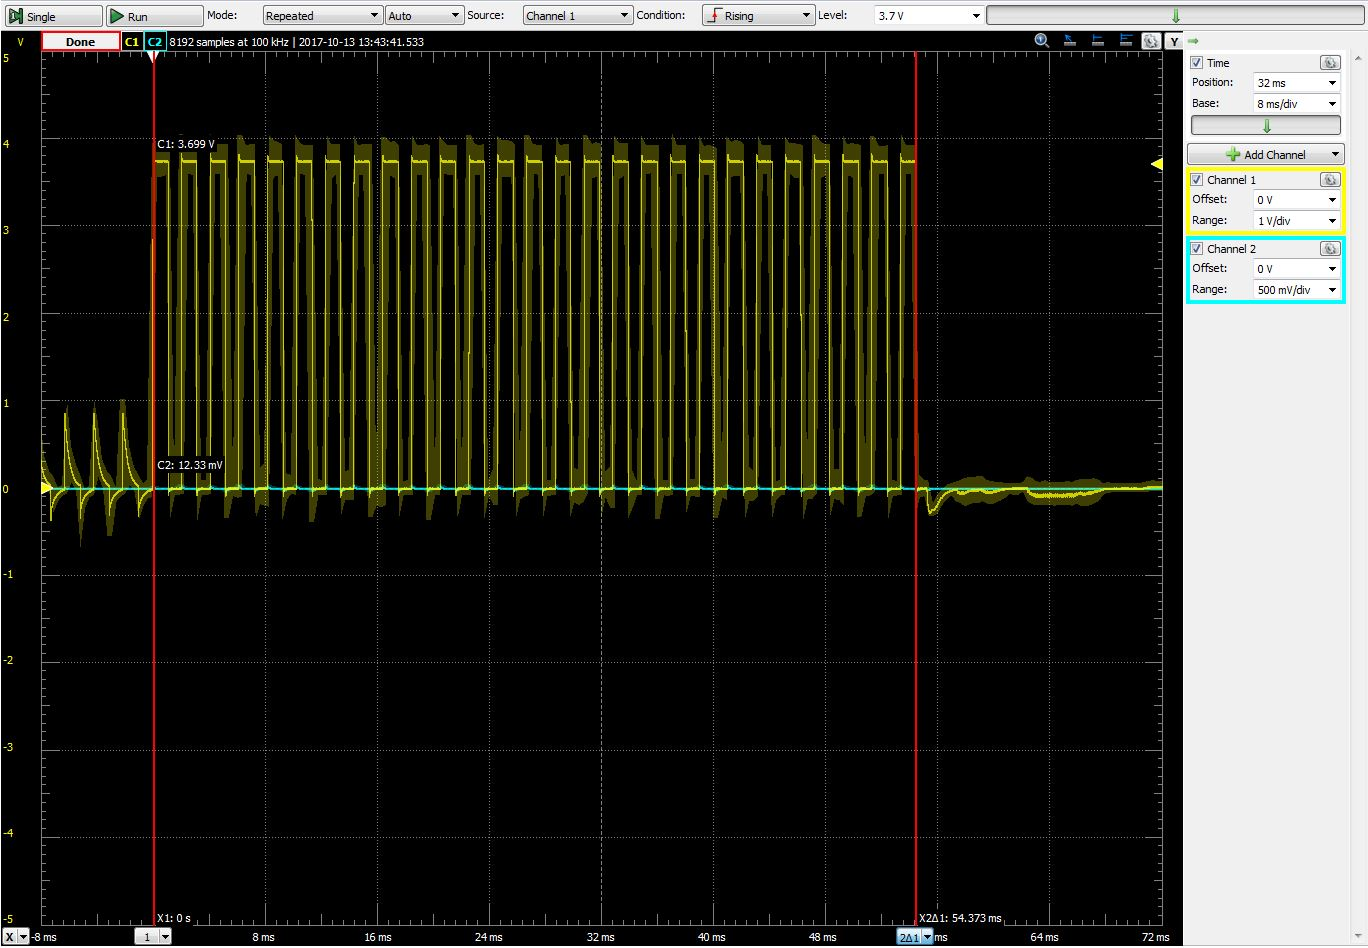 An LED on for whole 16-bit timer at 1MHz. 54.4ms for a 16-bit counter overflow.